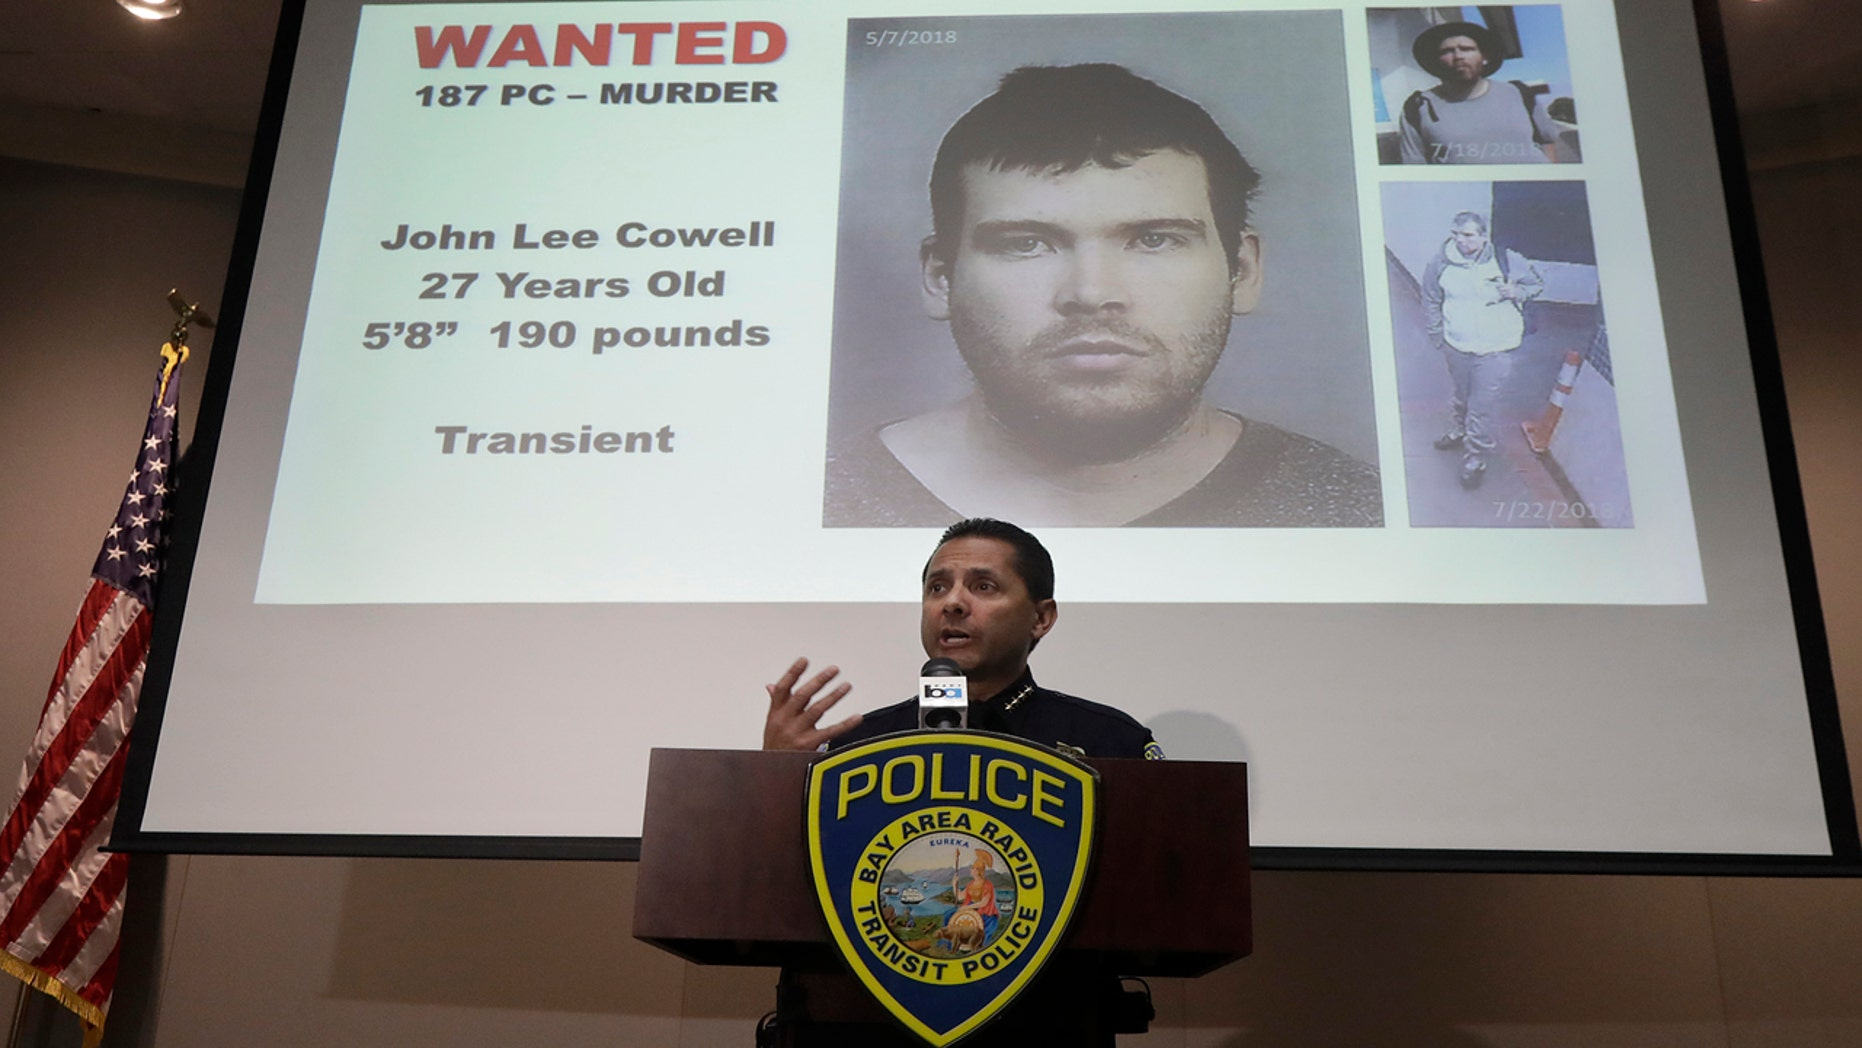 Bay Area Rapid Transit Police Chief Carlos Rojas speaks at a news conference in front of images of John Lee Cowell, a suspect wanted in the stabbings of two women at a BART station, in Oakland, Calif., Monday, July 23, 2018.